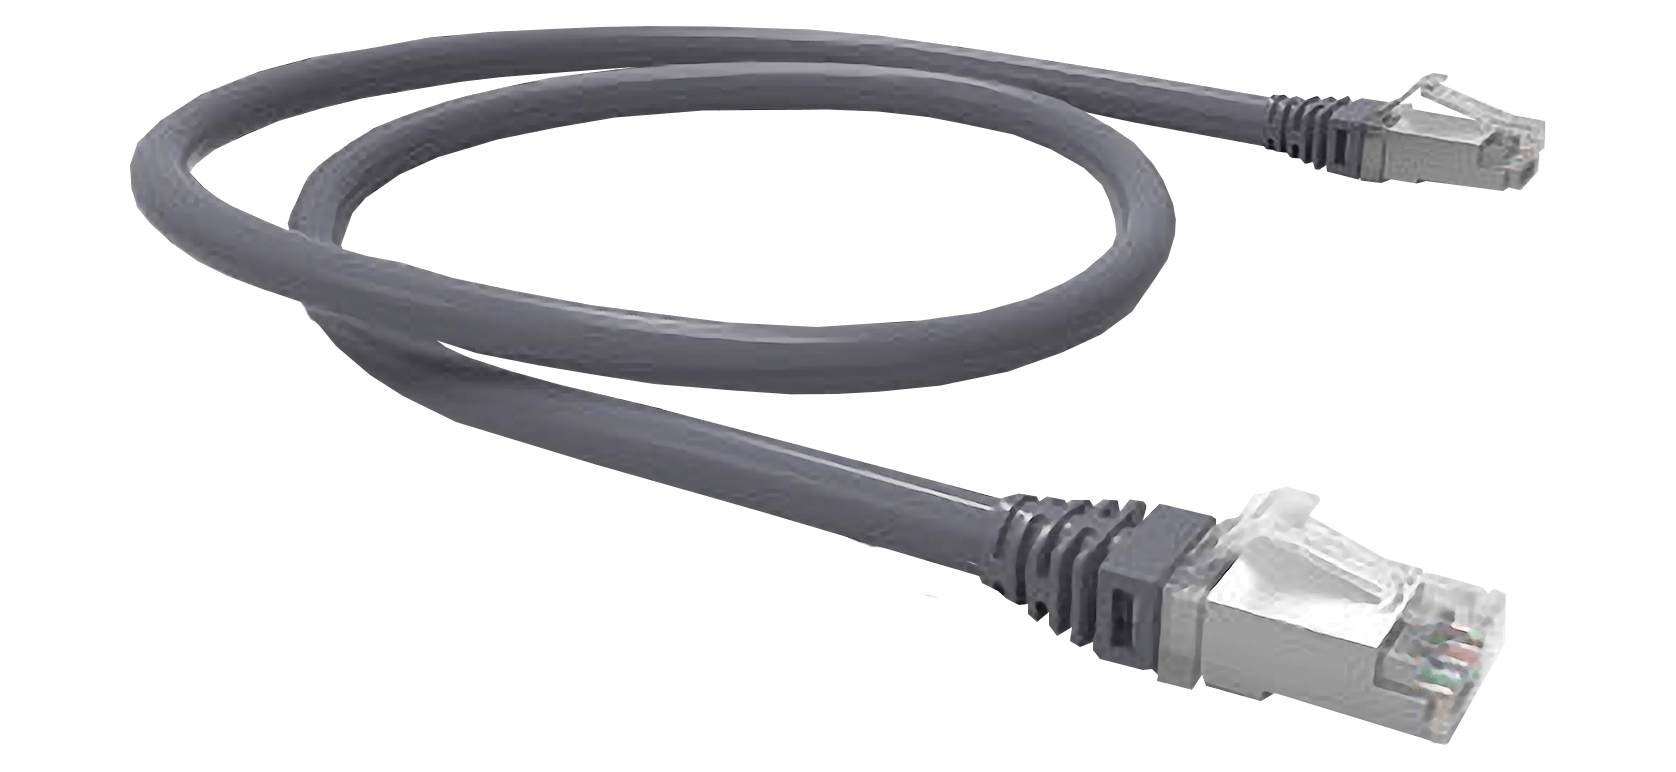 كابل شبكة باتش عكسي Shielded Patch Cord F/UTP CAT.6A